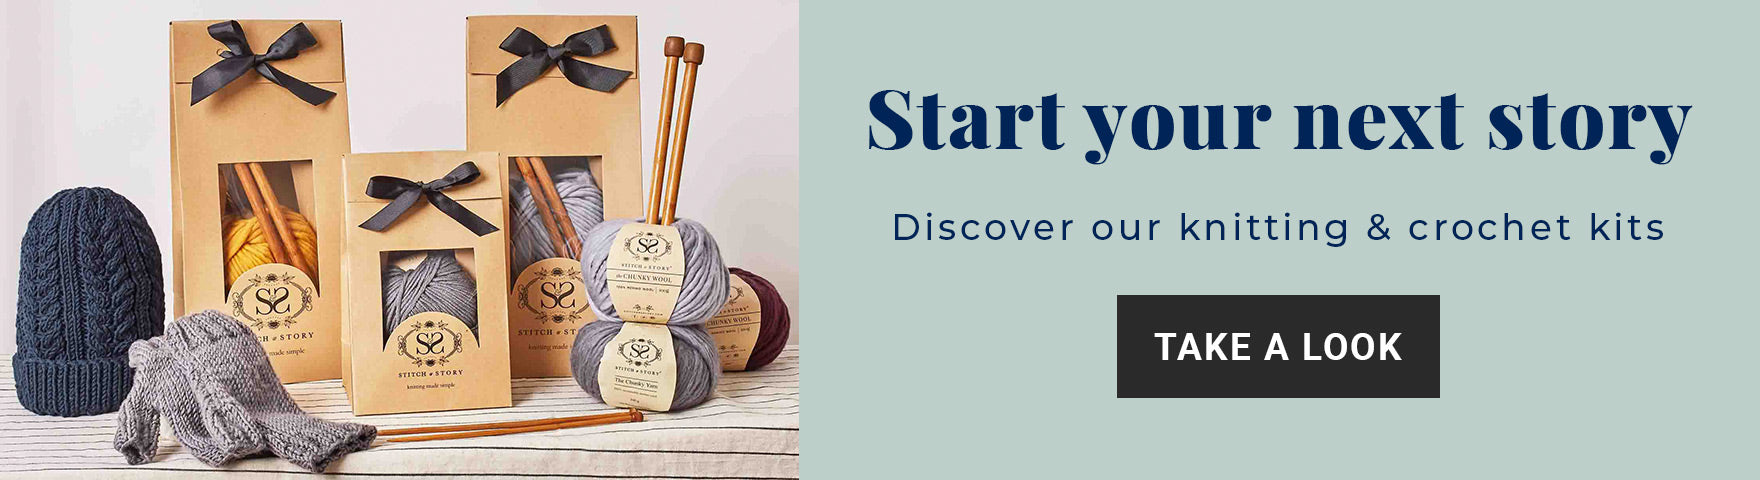 Shop for knitting and crochet kits at Stitch & Story